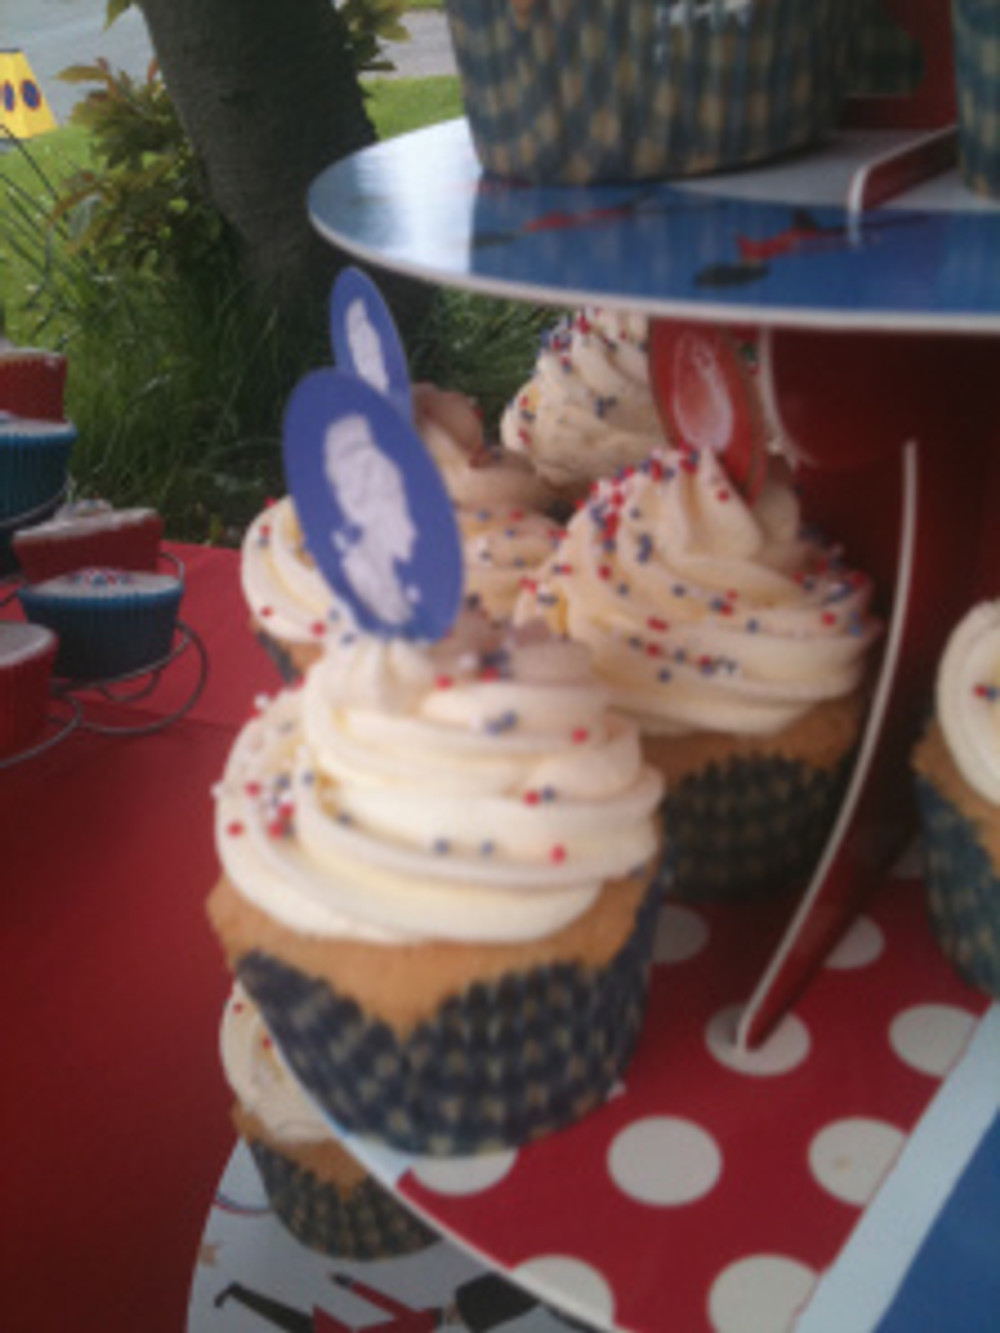 These Queen decorated cupcakes were popular with young and old alike.